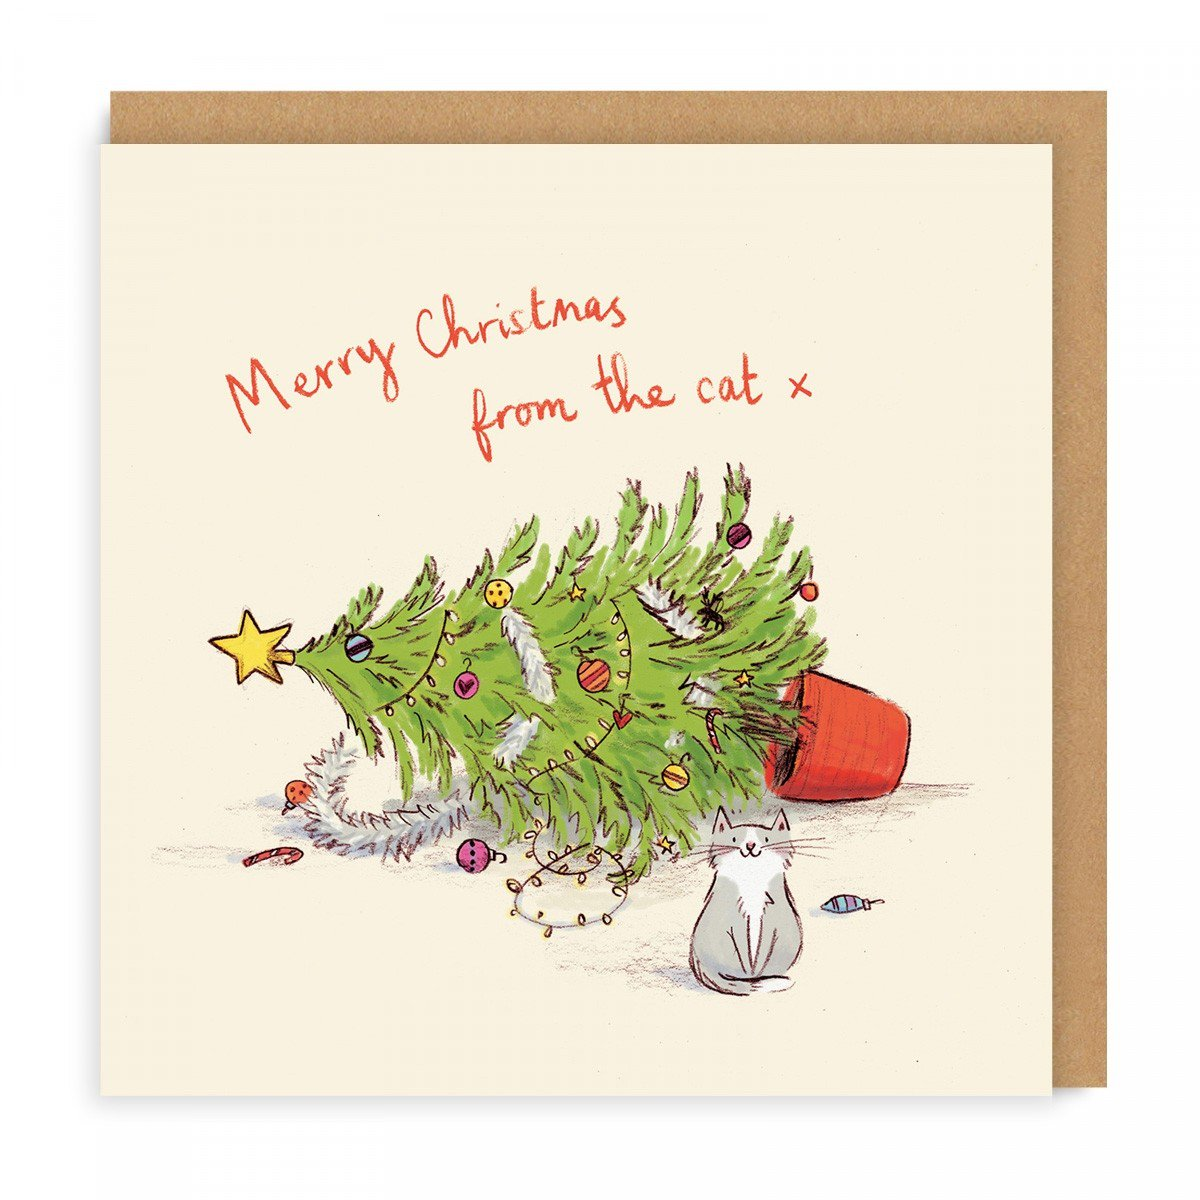 rcm-gc-002-sq-merry-christmas-from-the-cat.jpg